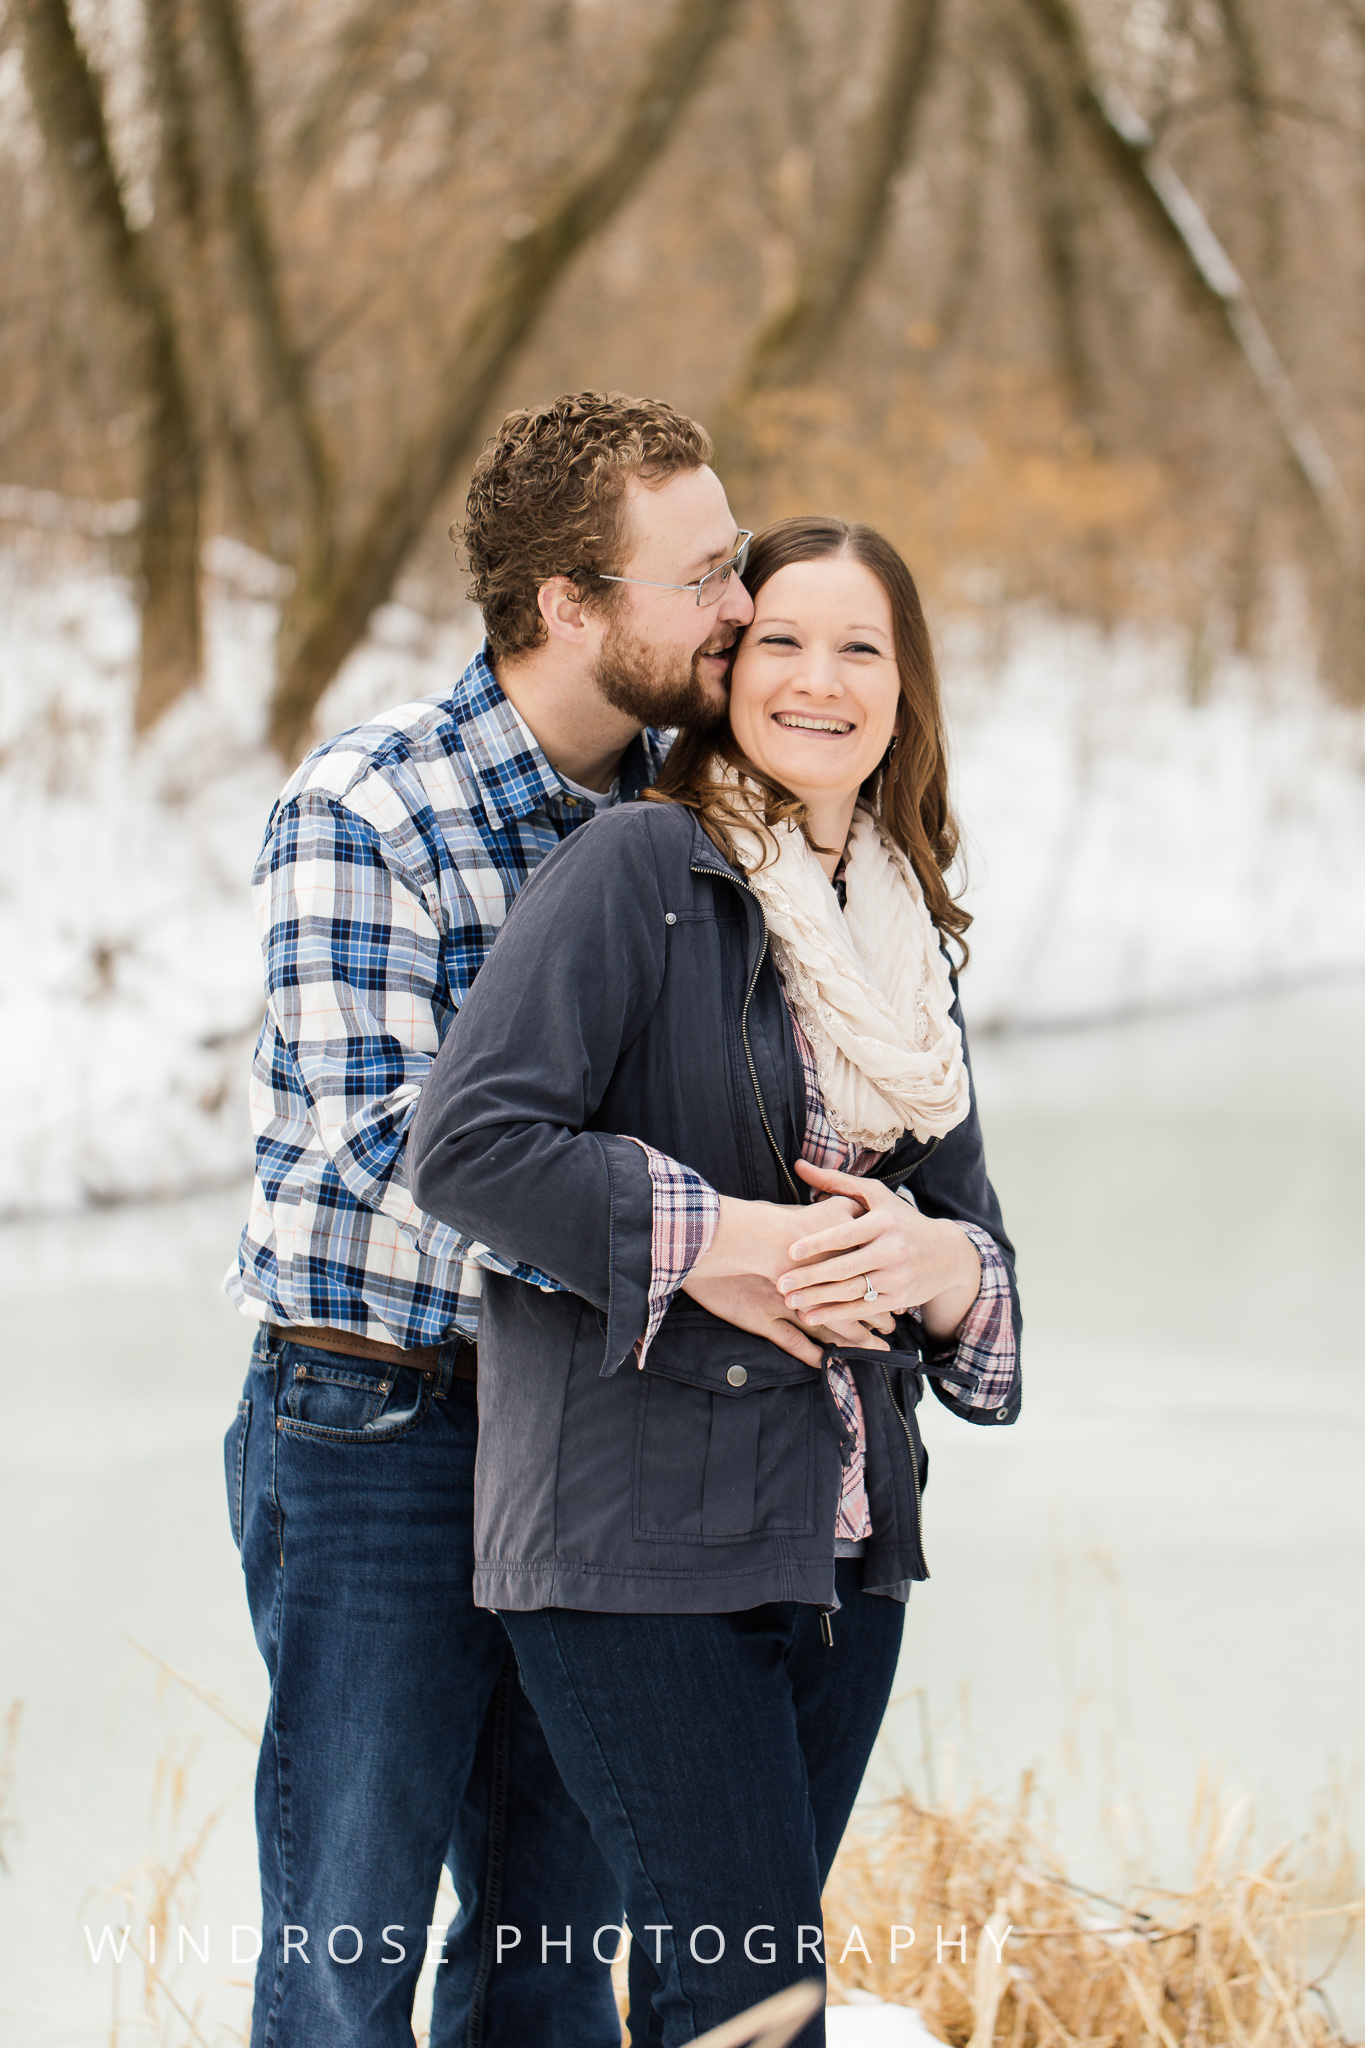 Quarry-Hill-Winter-Engagement-Photo-Session-4.jpg